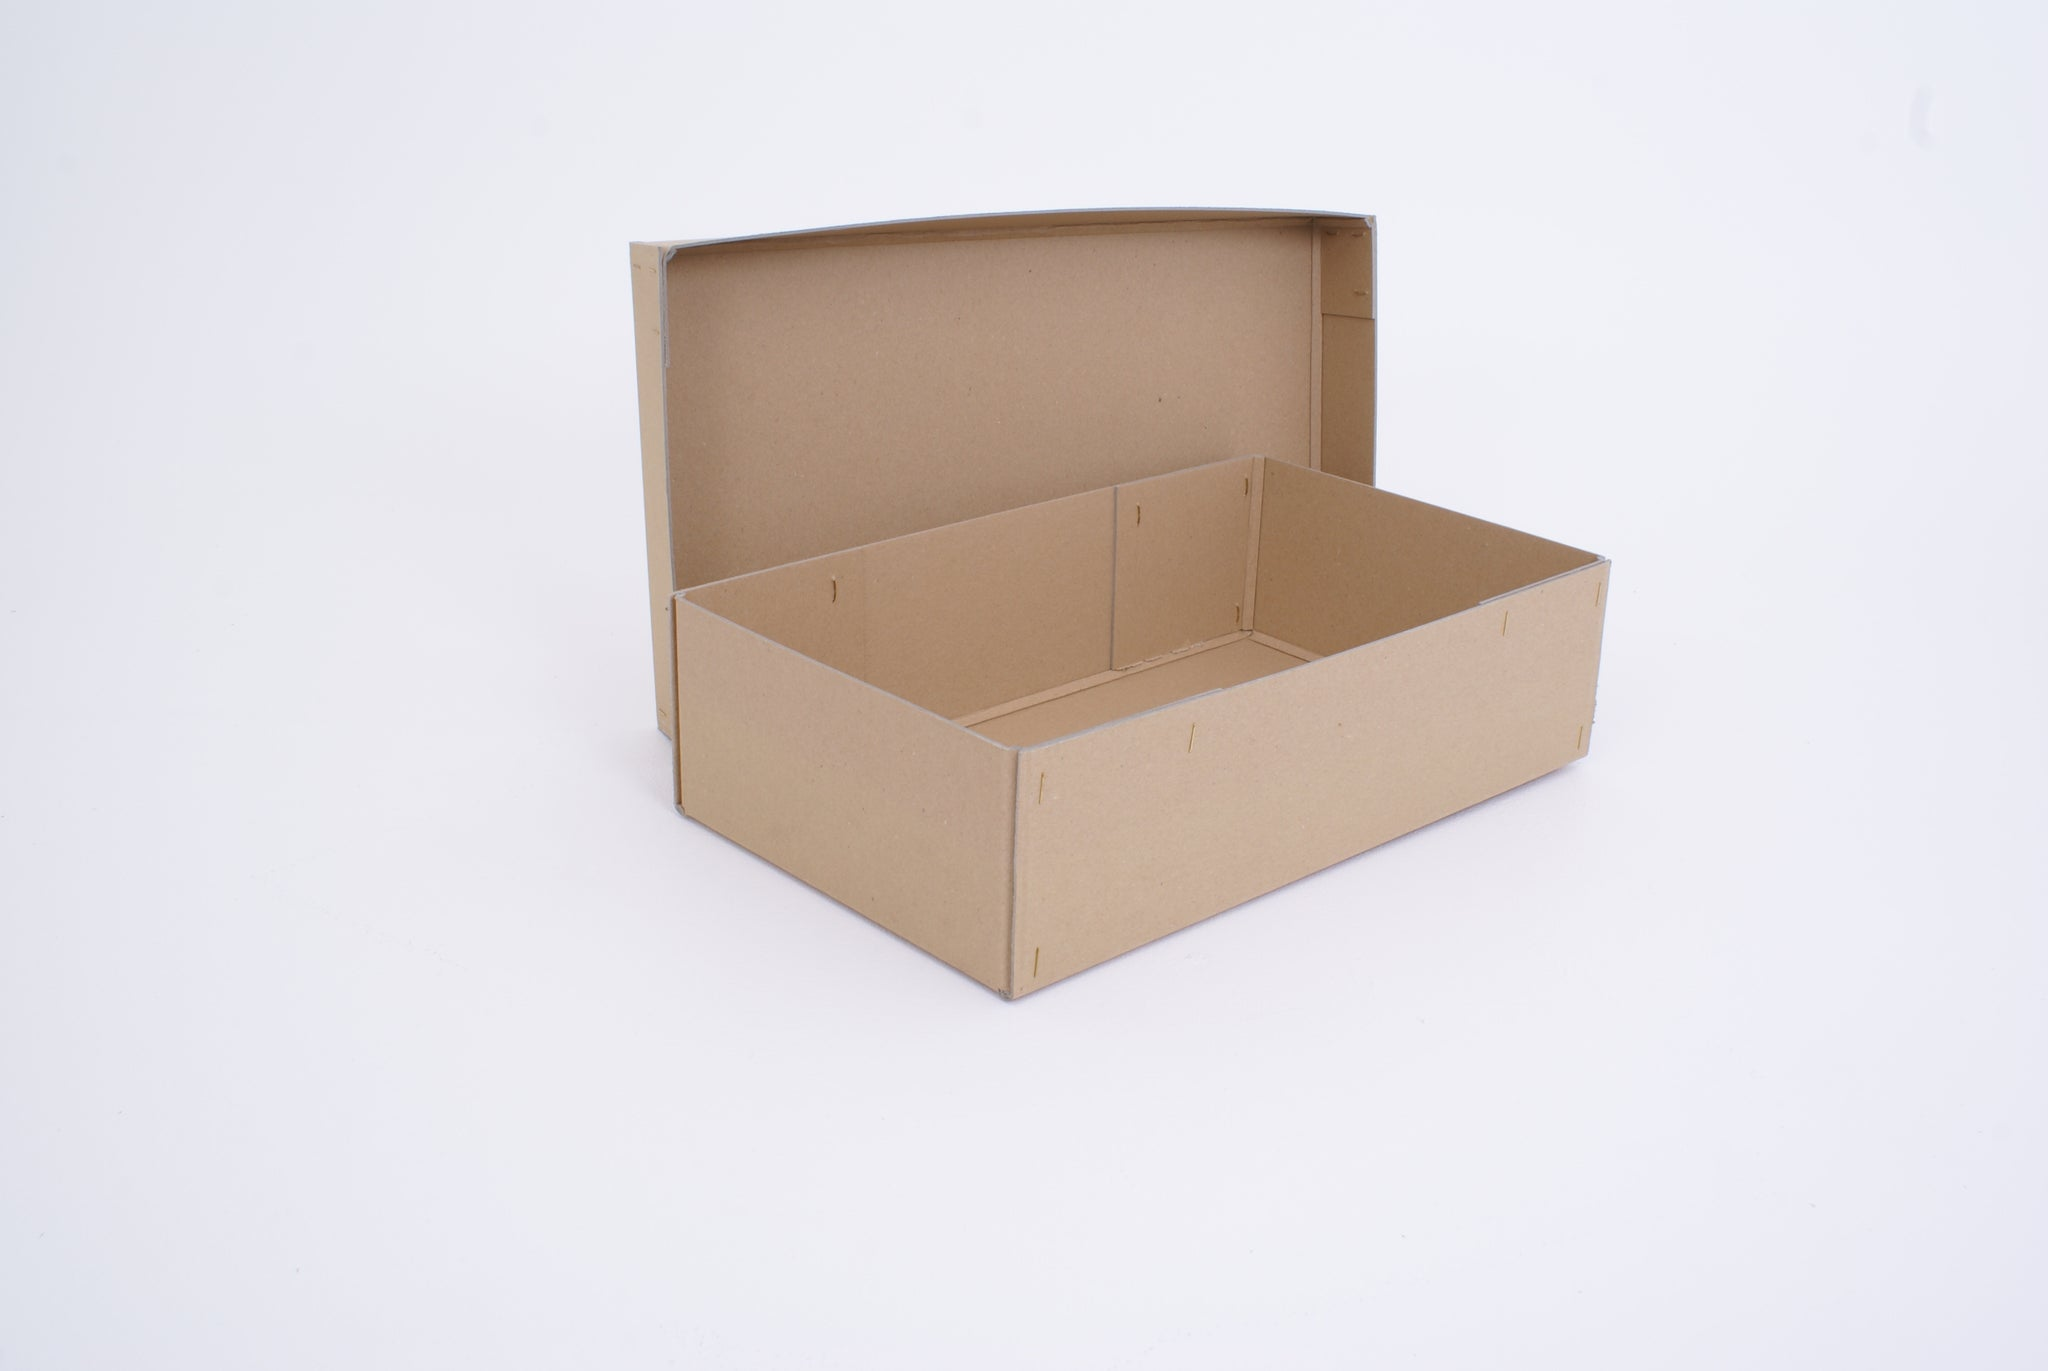 Wire Stitched Box - Shallow depth lid (WS-307)